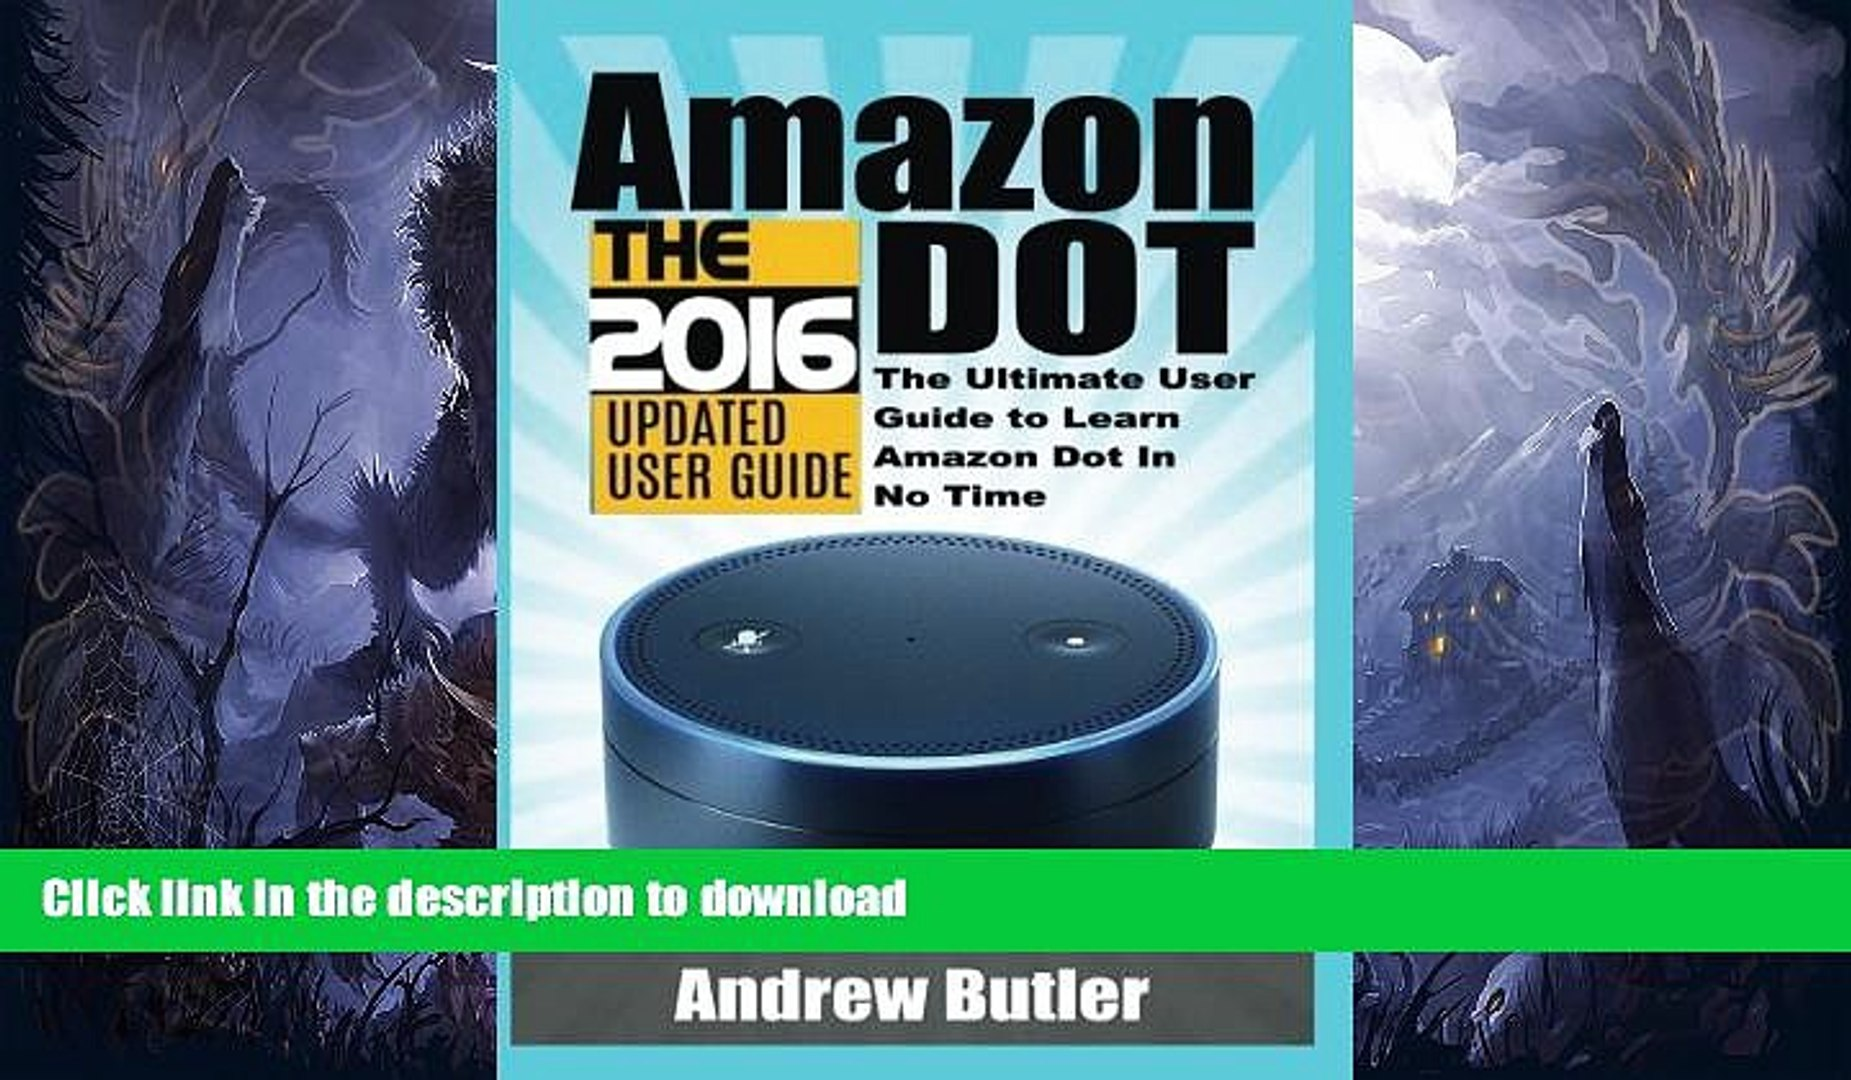 READ  Amazon Echo: Dot:The Ultimate User Guide to Learn Amazon Dot In No Time (Amazon Echo